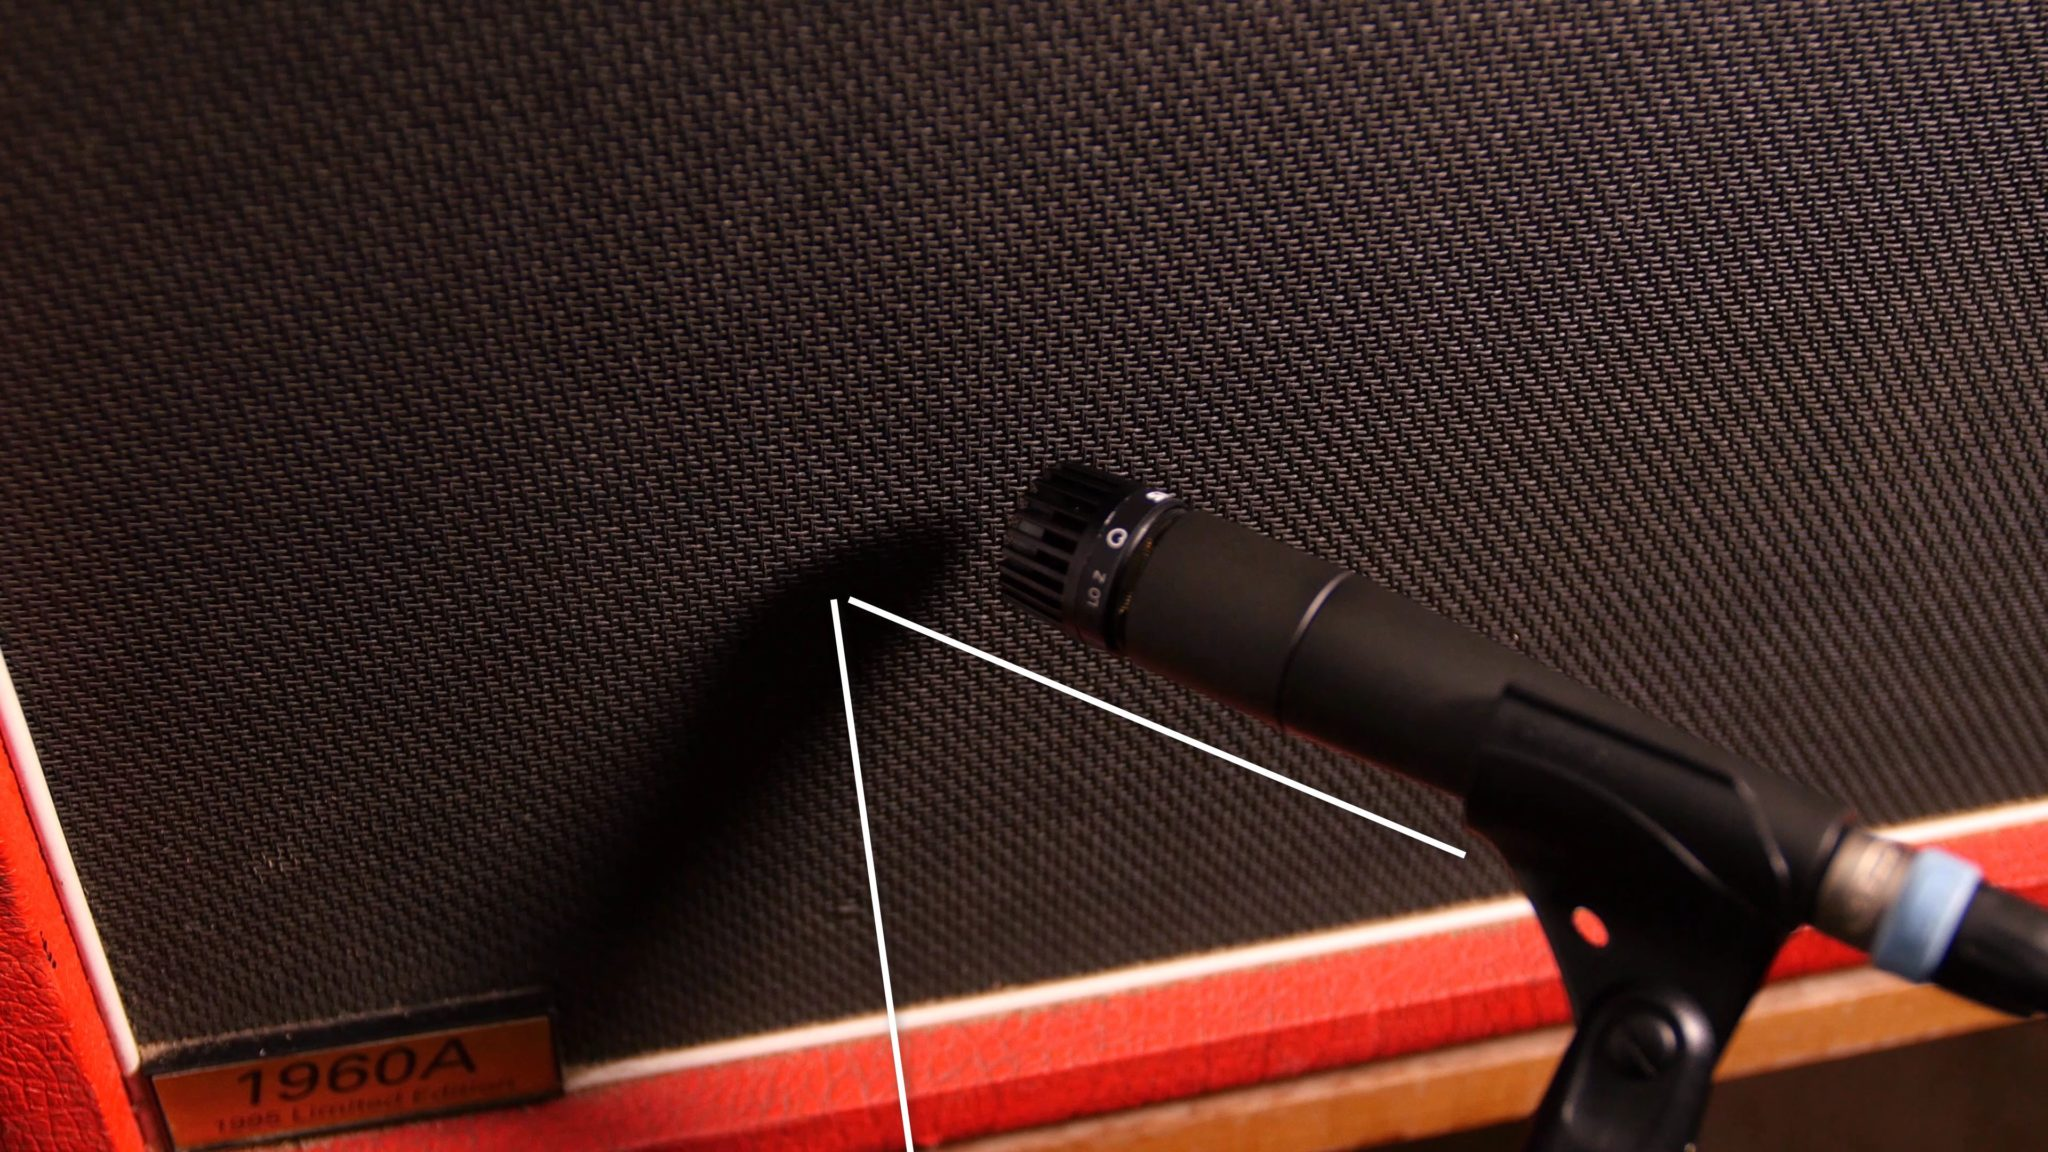 Recording Electric Guitar with a Shure SM57 - Different Recording angles (in this case 45°) can alter the sound